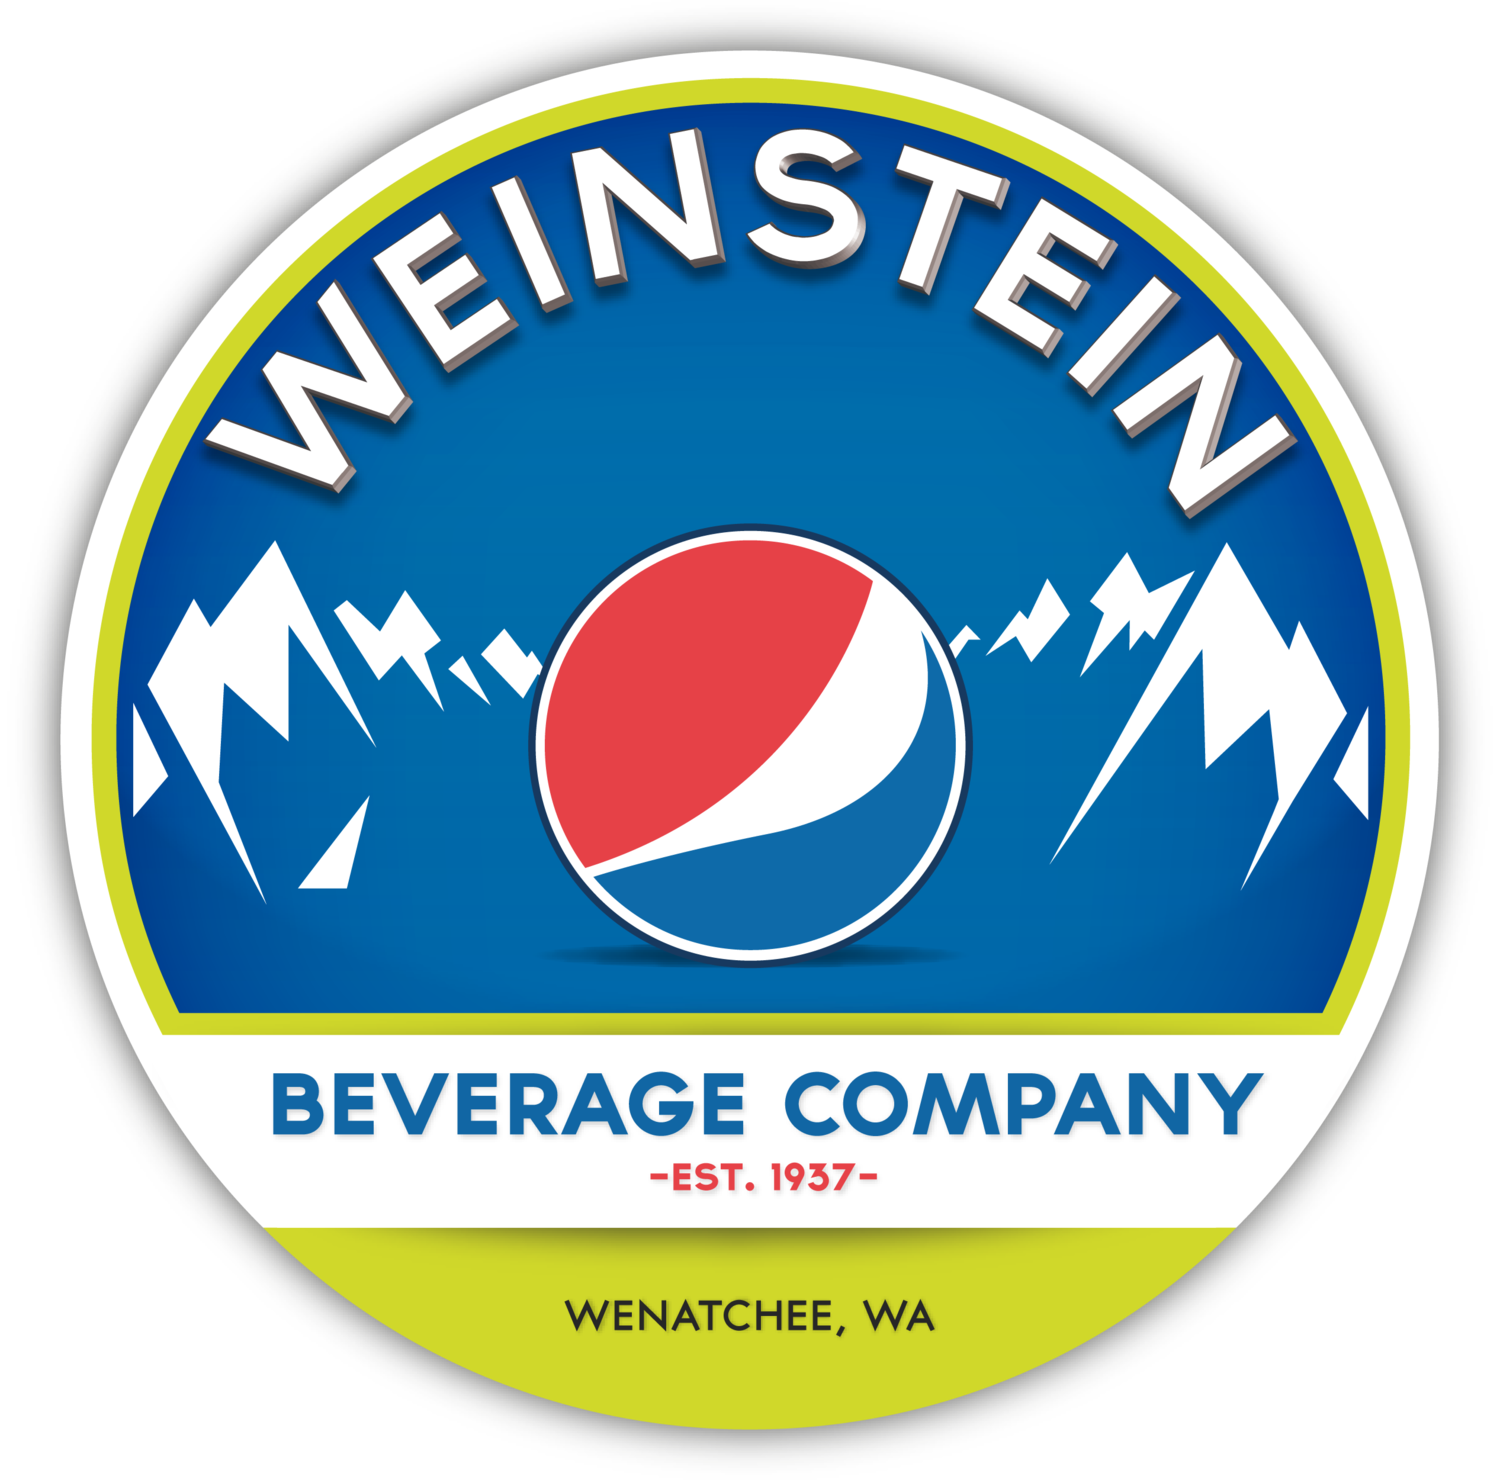 Weinstein Beverage Company - North Central Washington